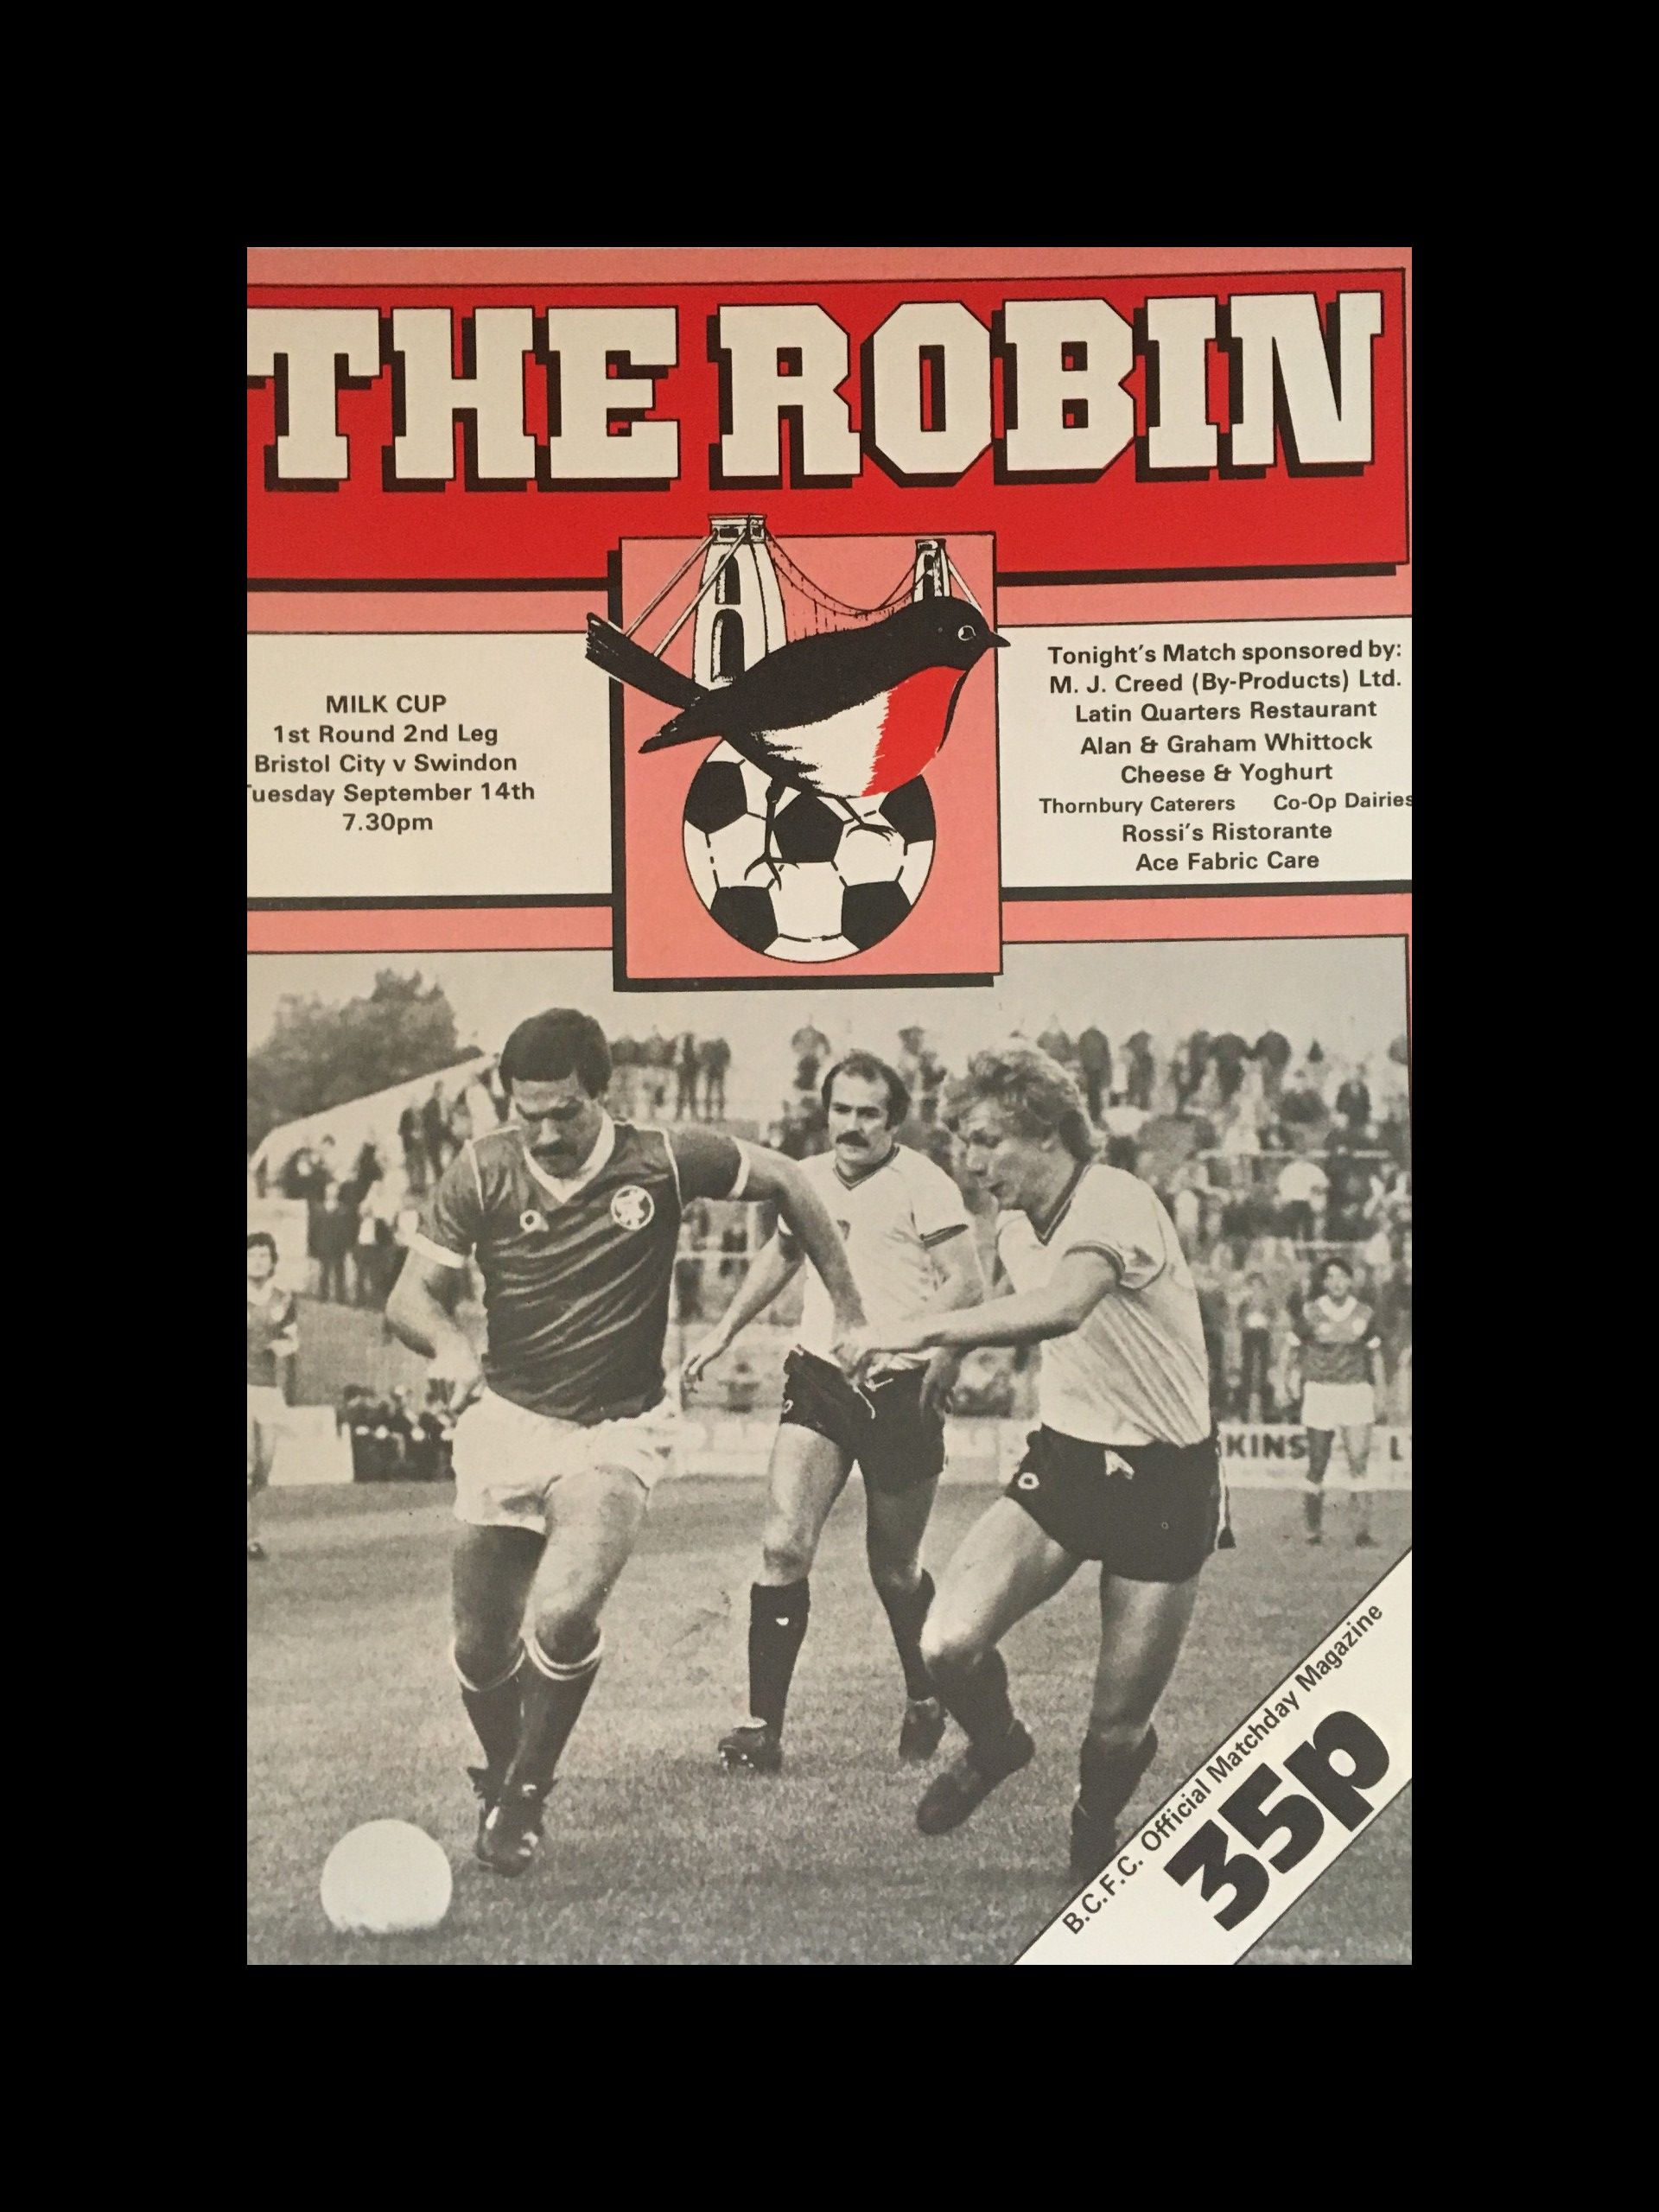 Bristol City v Swindon Town 14-09-82 Programme